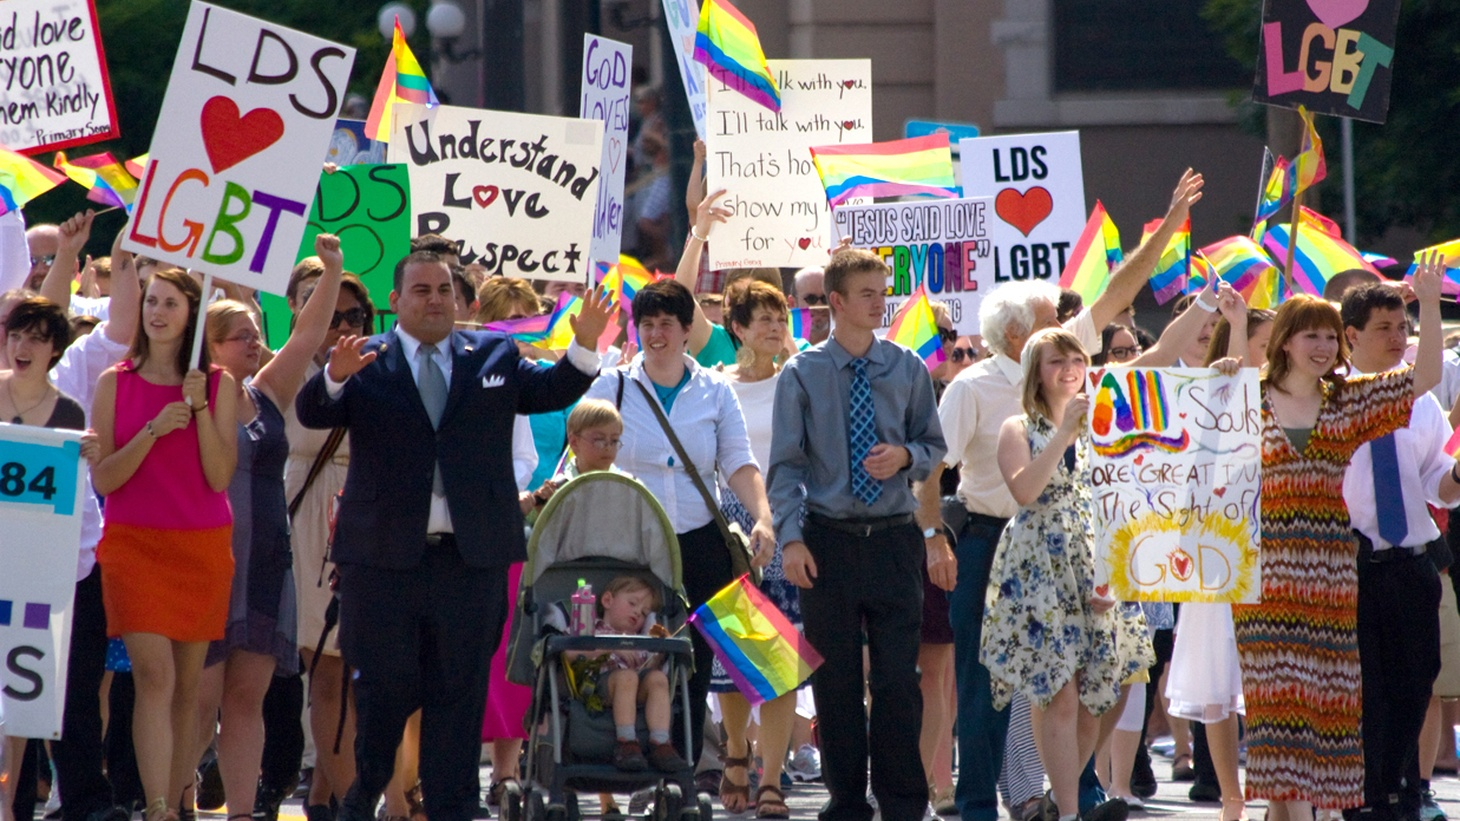 """Last week, Utah enacted a new law protecting the rights of lesbians, gays, bi-sexual and transgender people against some kinds of discrimination. We hear how the so-called """"Utah Compromise"""" got the support of the Mormon Church, which dominates Utah and continues to oppose anything other than heterosexual lifestyles."""